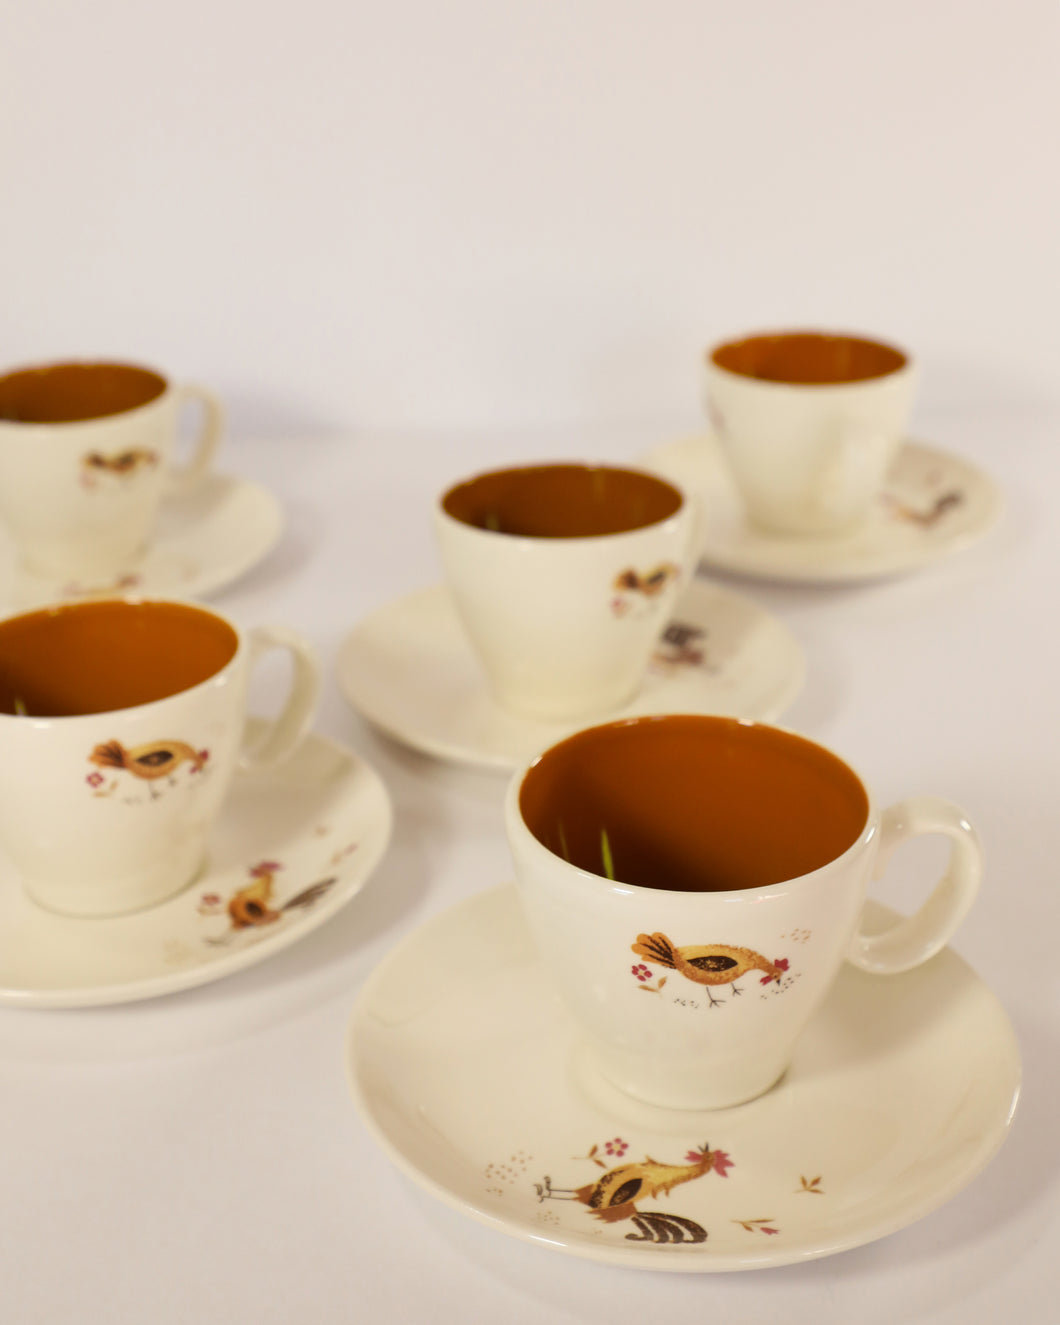 Hen & Rooster Teacups and Saucers, set of 5